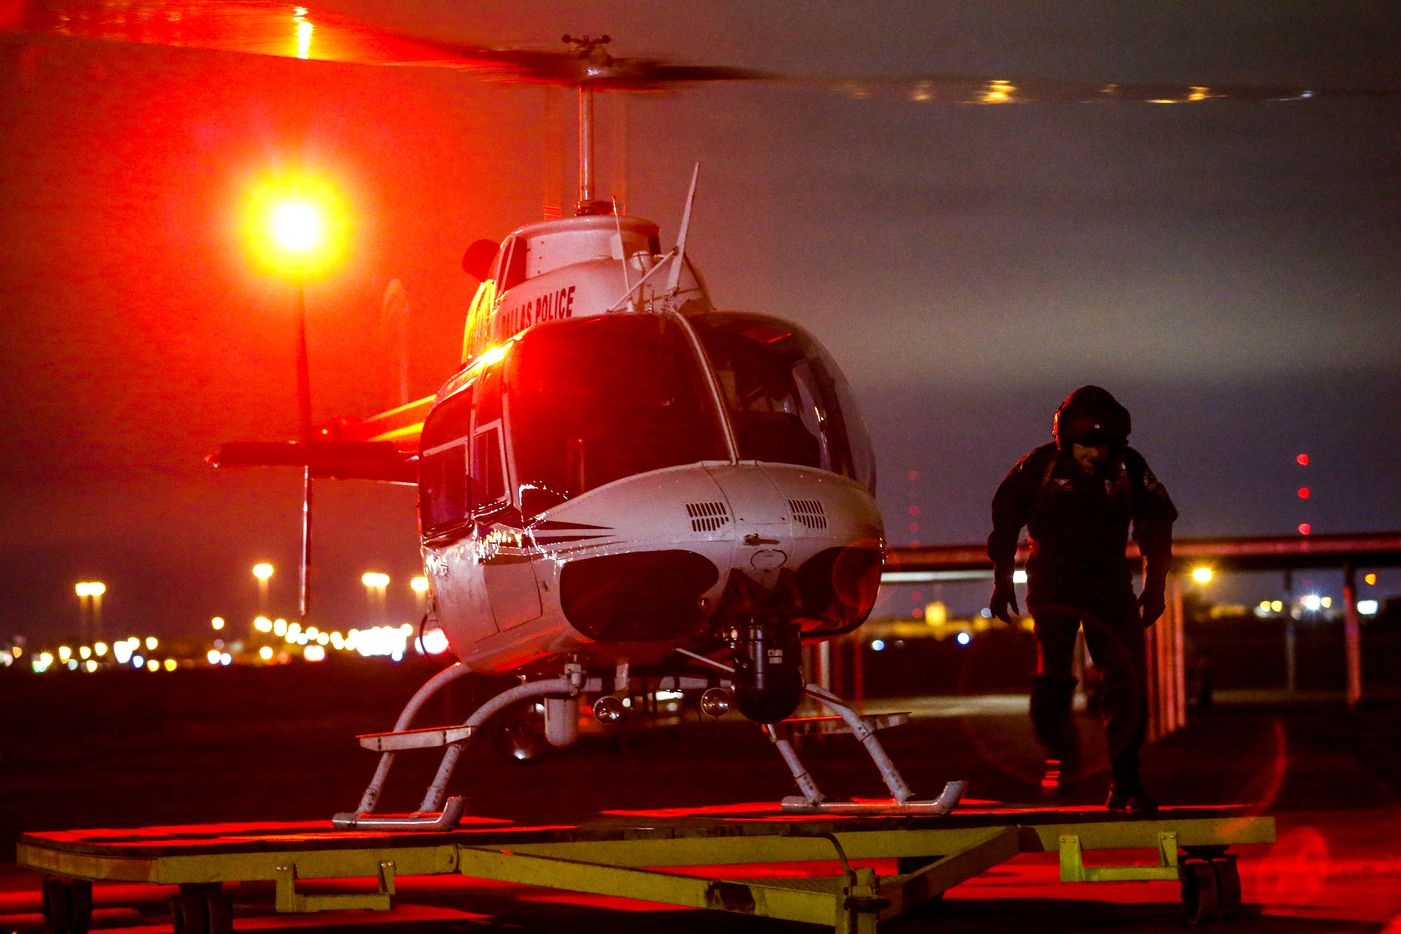 Dallas Police Helicopter Unit pilots senior corporal Rob Bryan, right, and senior corporal Mark Colborn, in helicopter, prepare to respond to a call to assist in a stolen car chase in the northwest police division after shots were fired at officers on Thursday, Oct. 31, 2019.